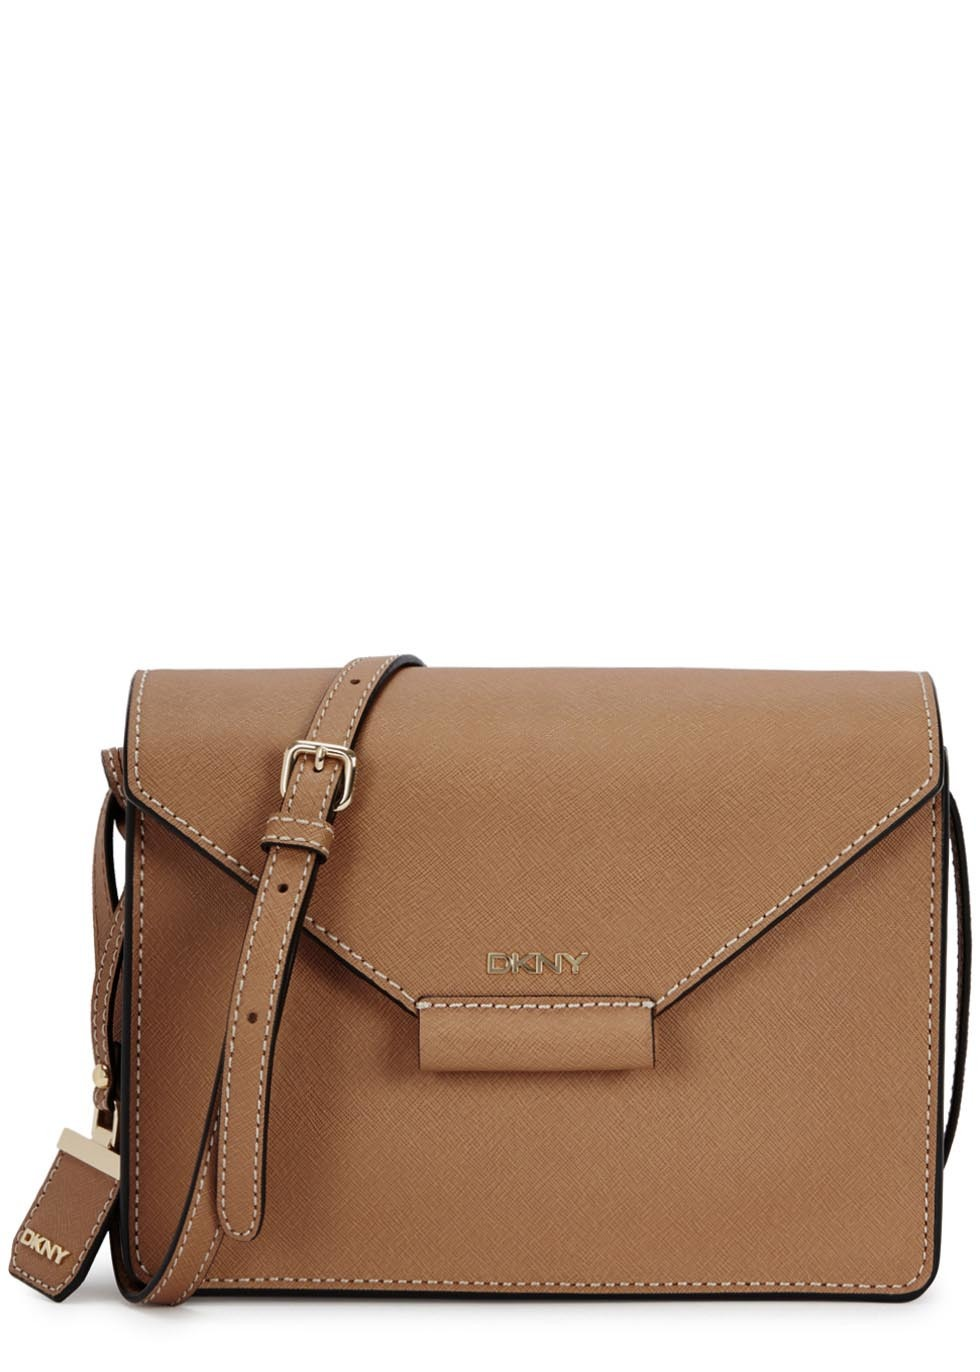 Bryant Park Camel Saffiano Leather Cross Body Bag - predominant colour: camel; occasions: casual; style: messenger; length: across body/long; size: standard; material: leather; pattern: plain; finish: plain; season: a/w 2015